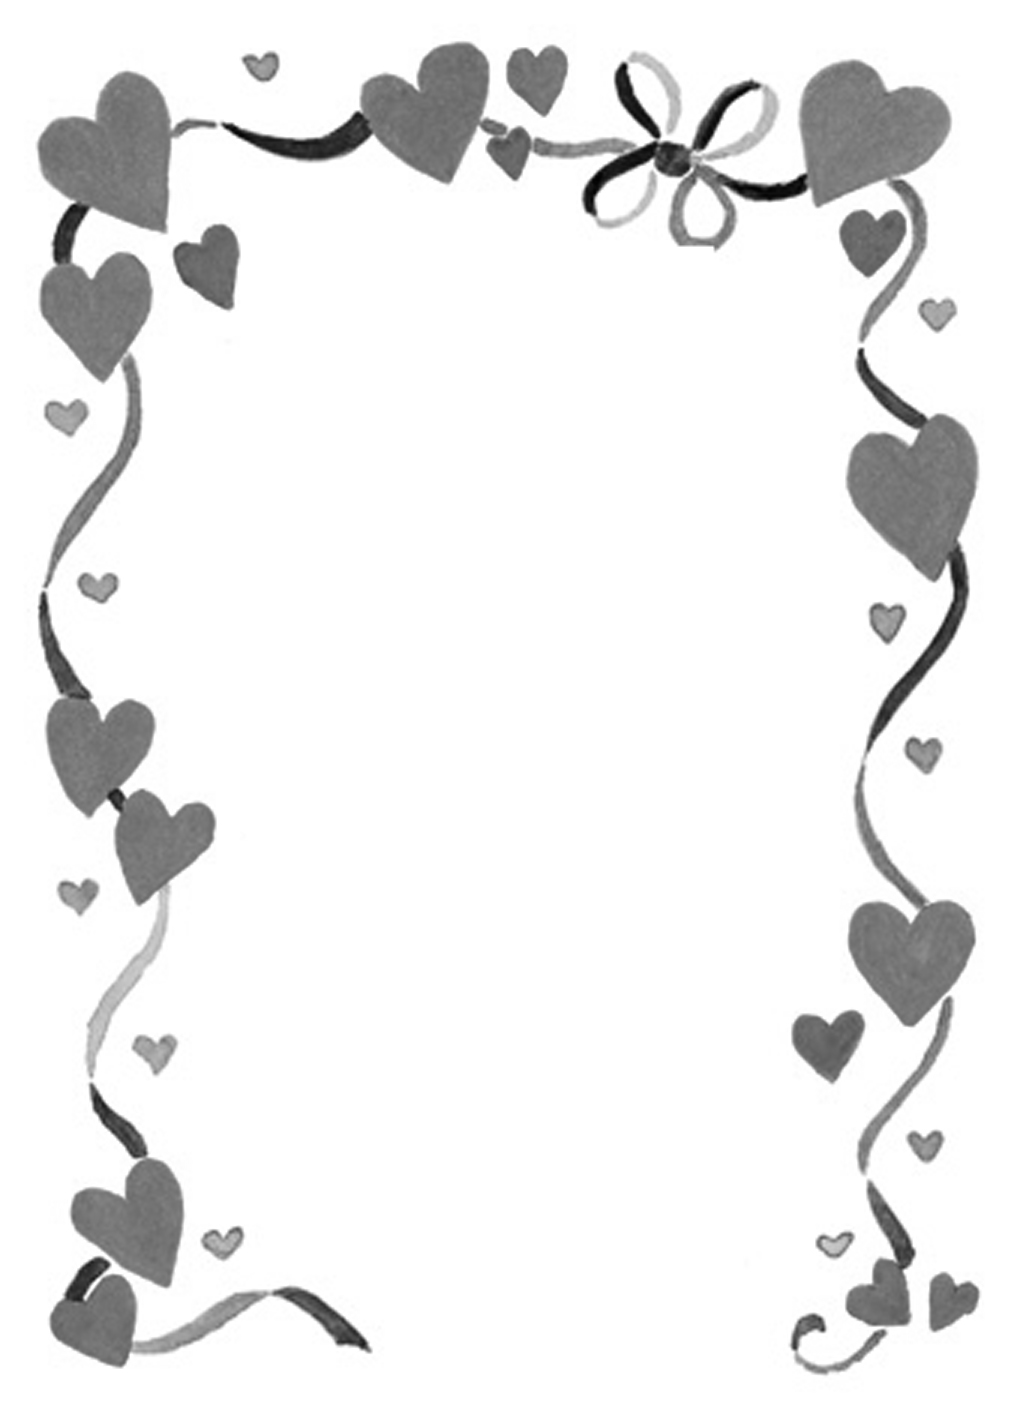 Word wedding clipart picture black and white stock Free Wedding Border Cliparts, Download Free Clip Art, Free Clip Art ... picture black and white stock